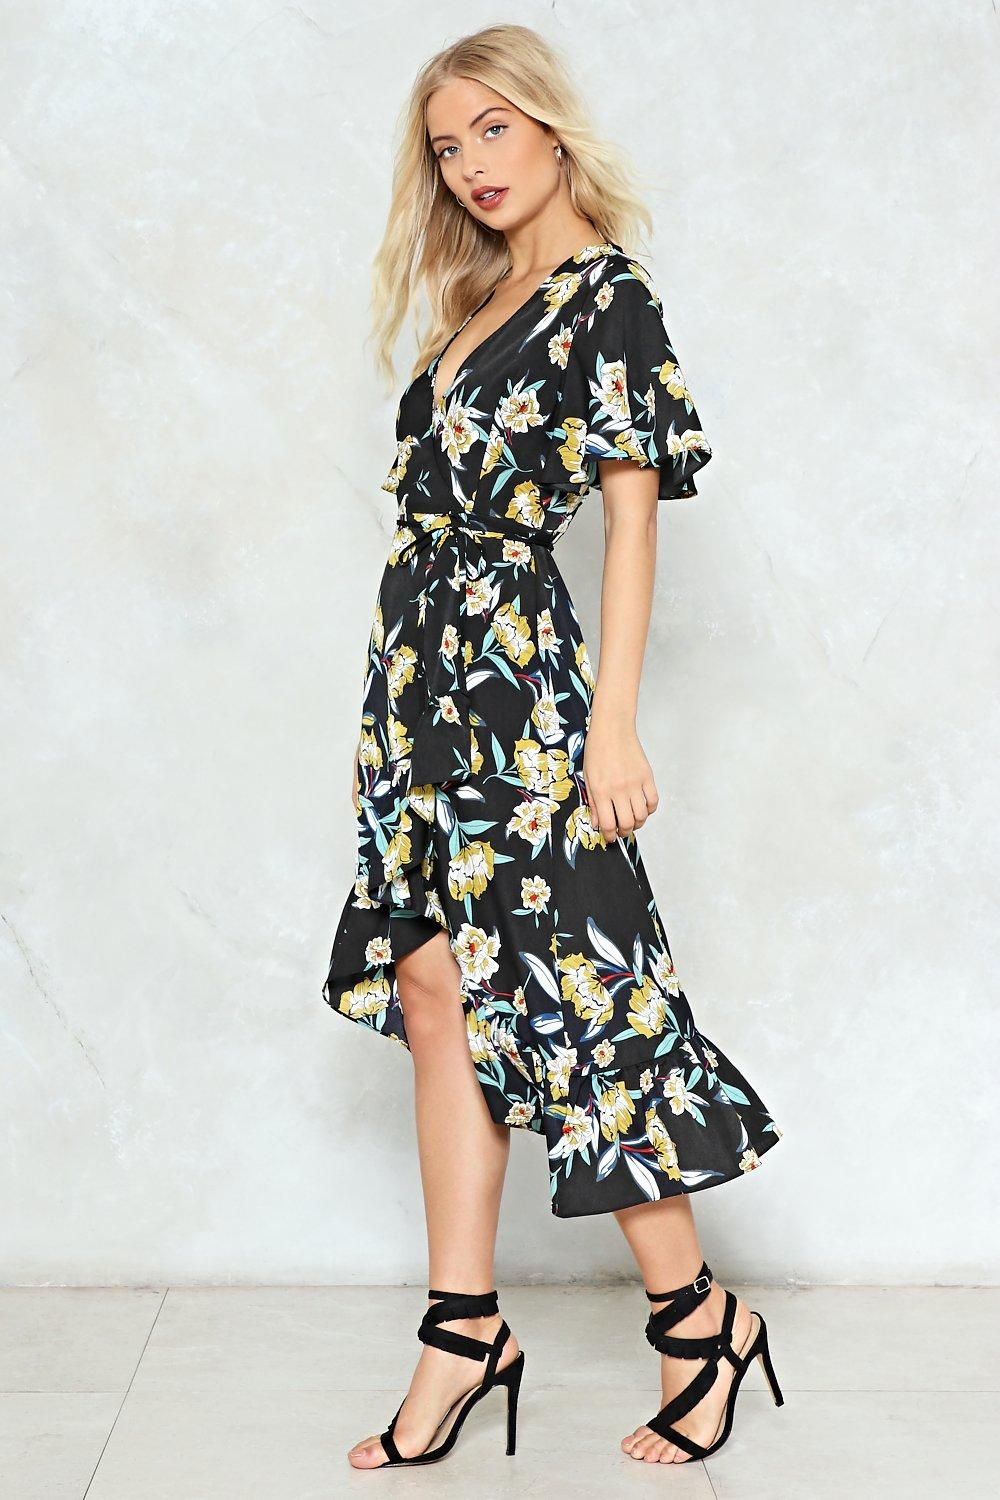 21325218ef4c We Just Grow Together Floral Wrap Dress